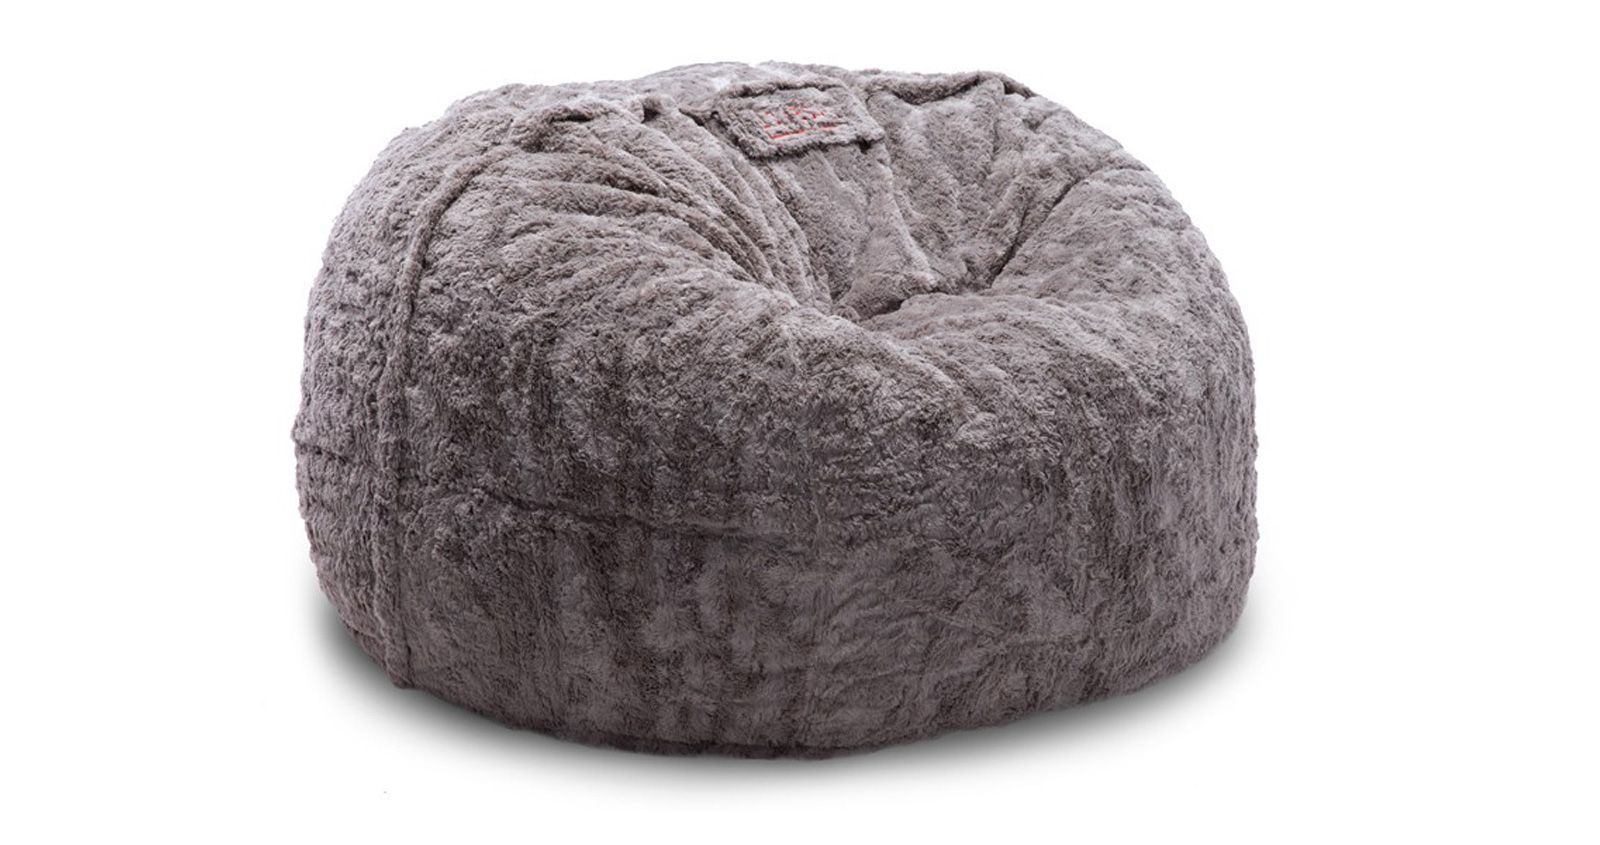 Lovesac  The Big one fits three adults comfortably. Super expensive though. fc245e8efd689